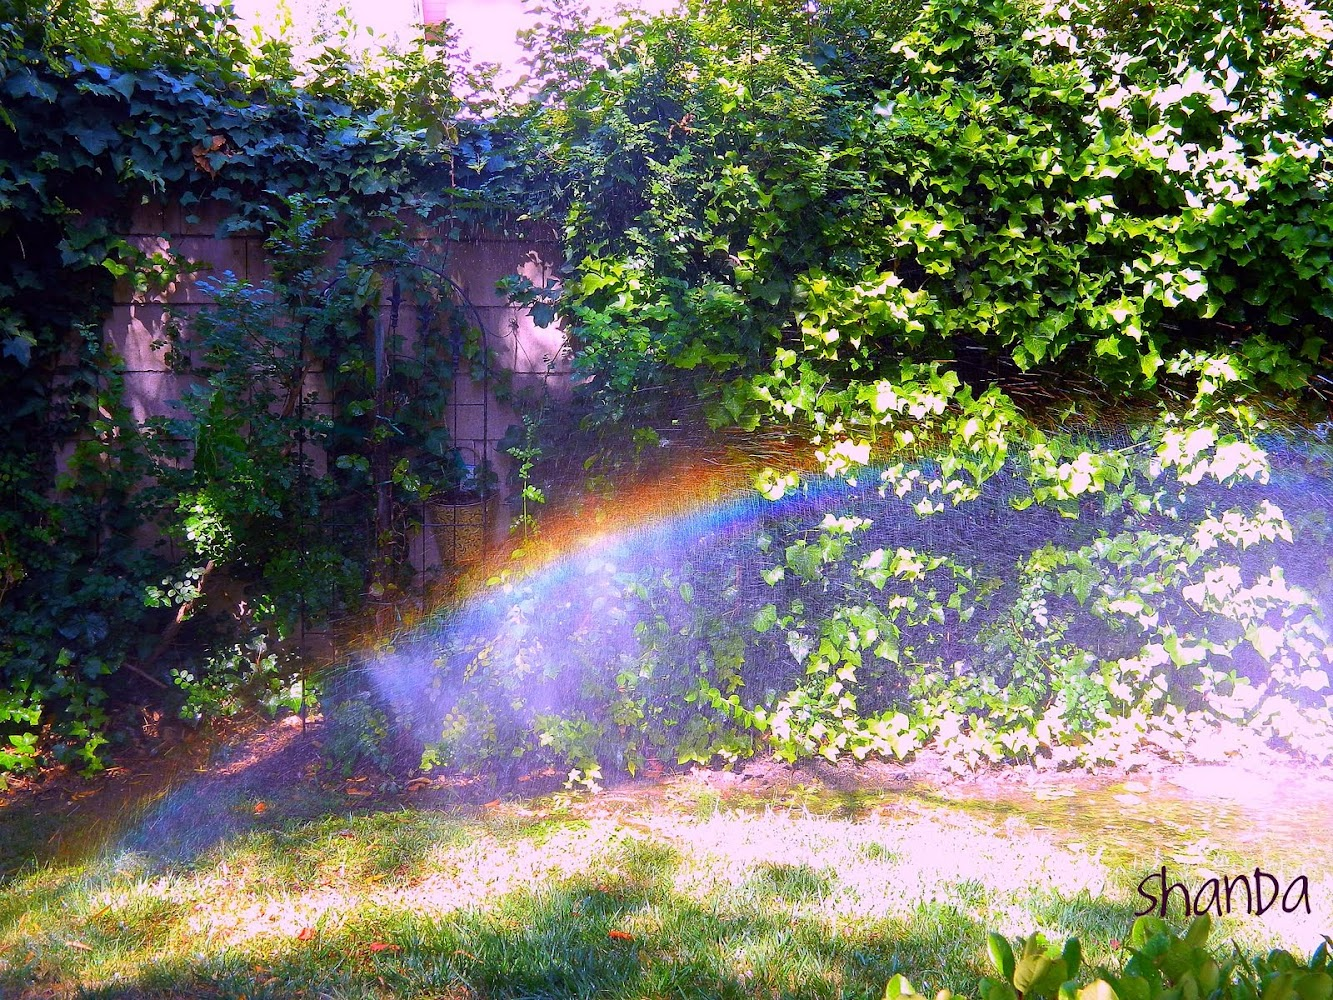 Sprinkler Rainbow and Backyard Blessings